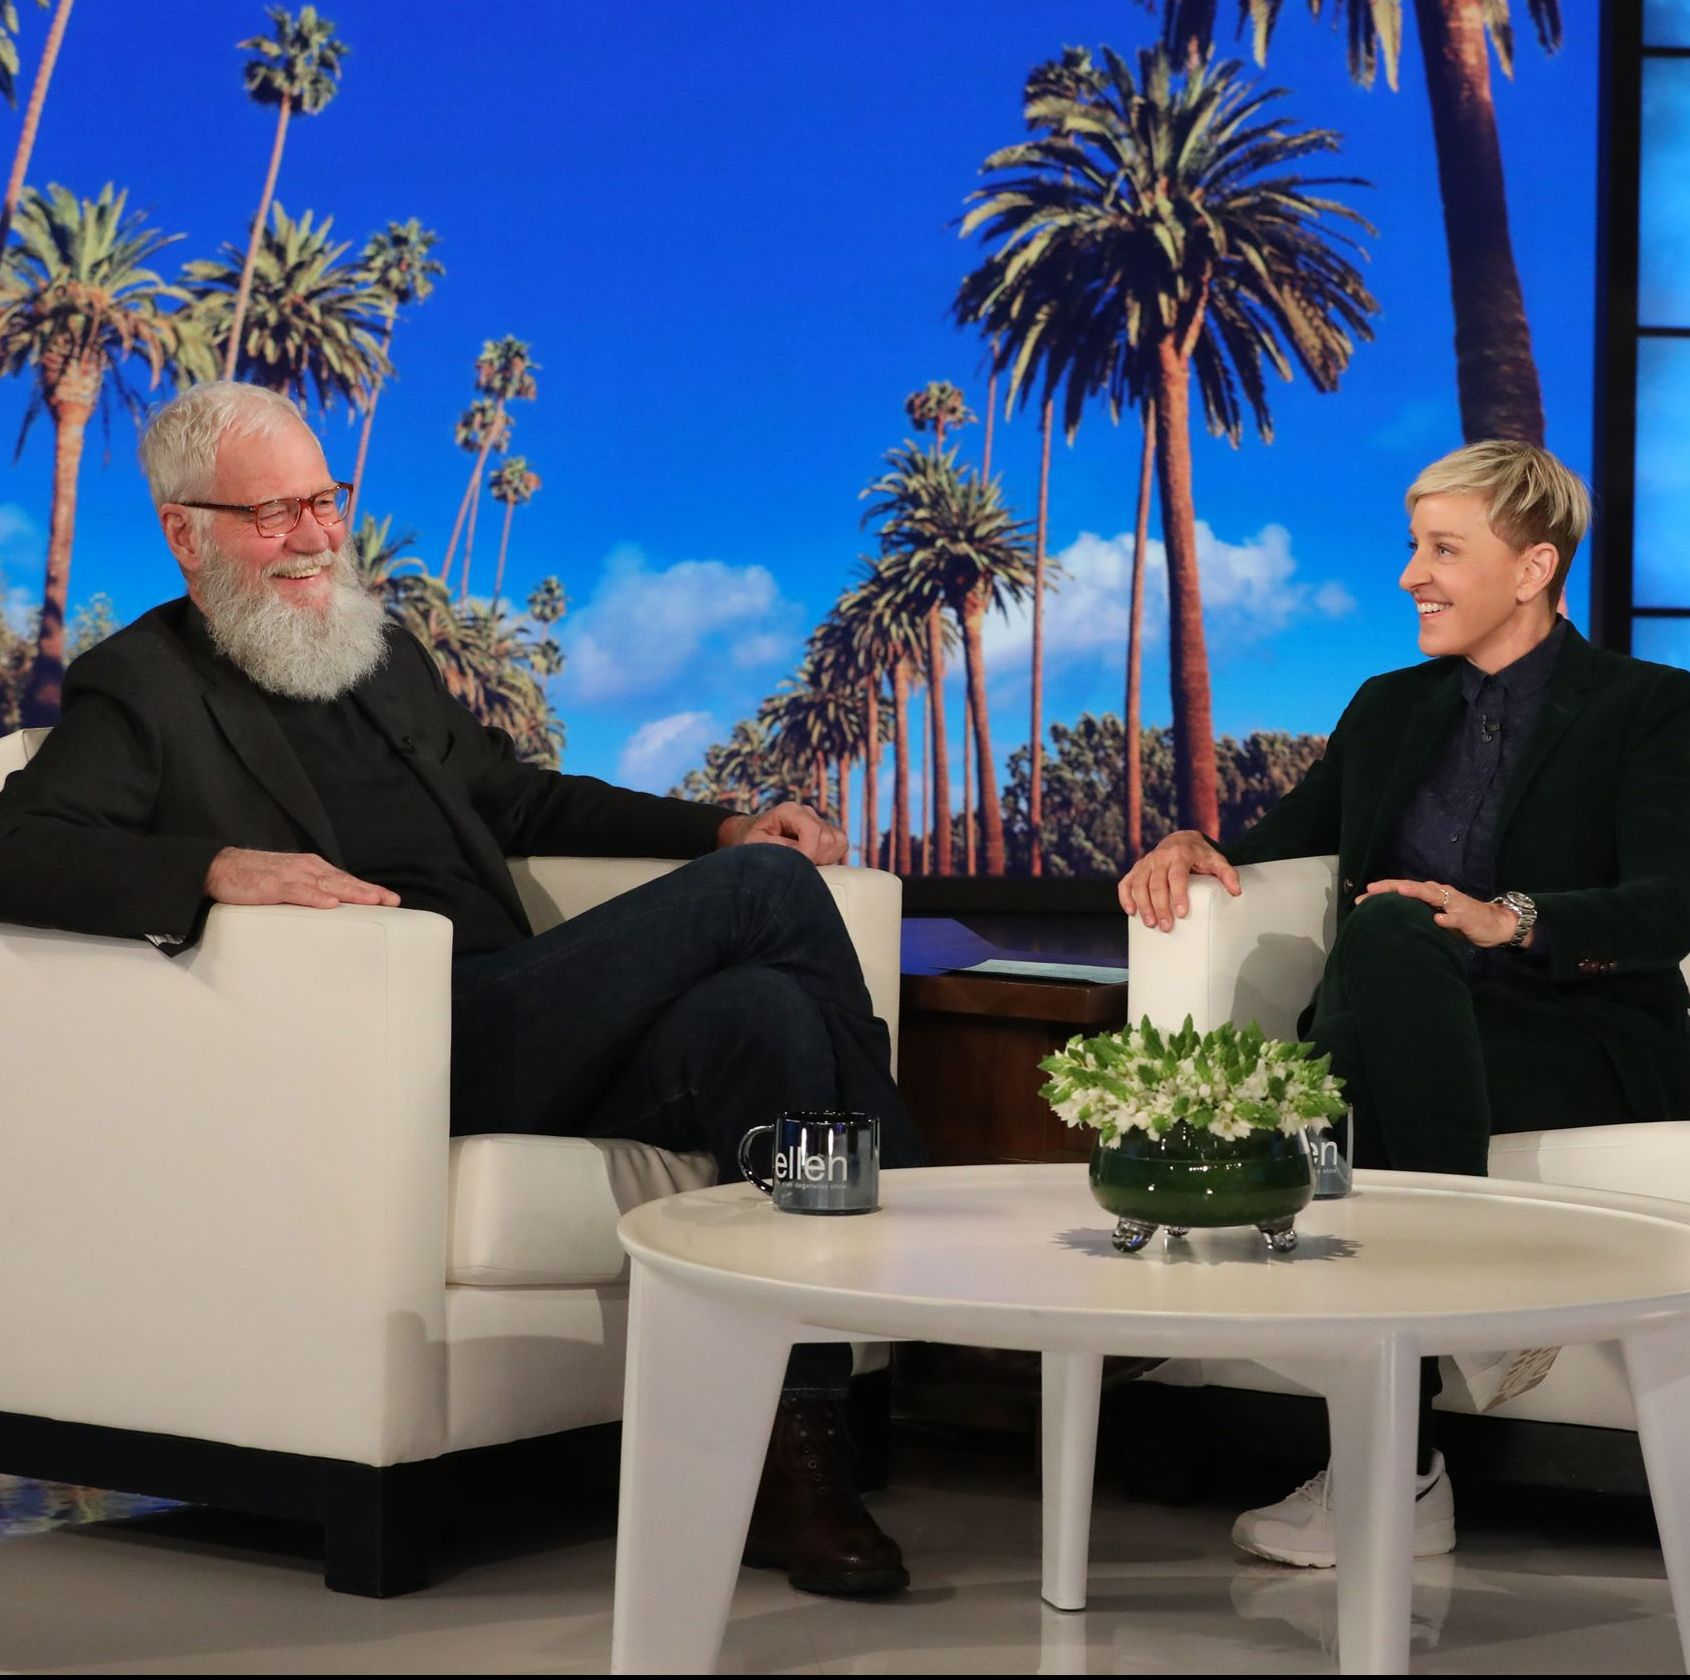 David Letterman Opens Up About Trump and Fatherhood on Ellen